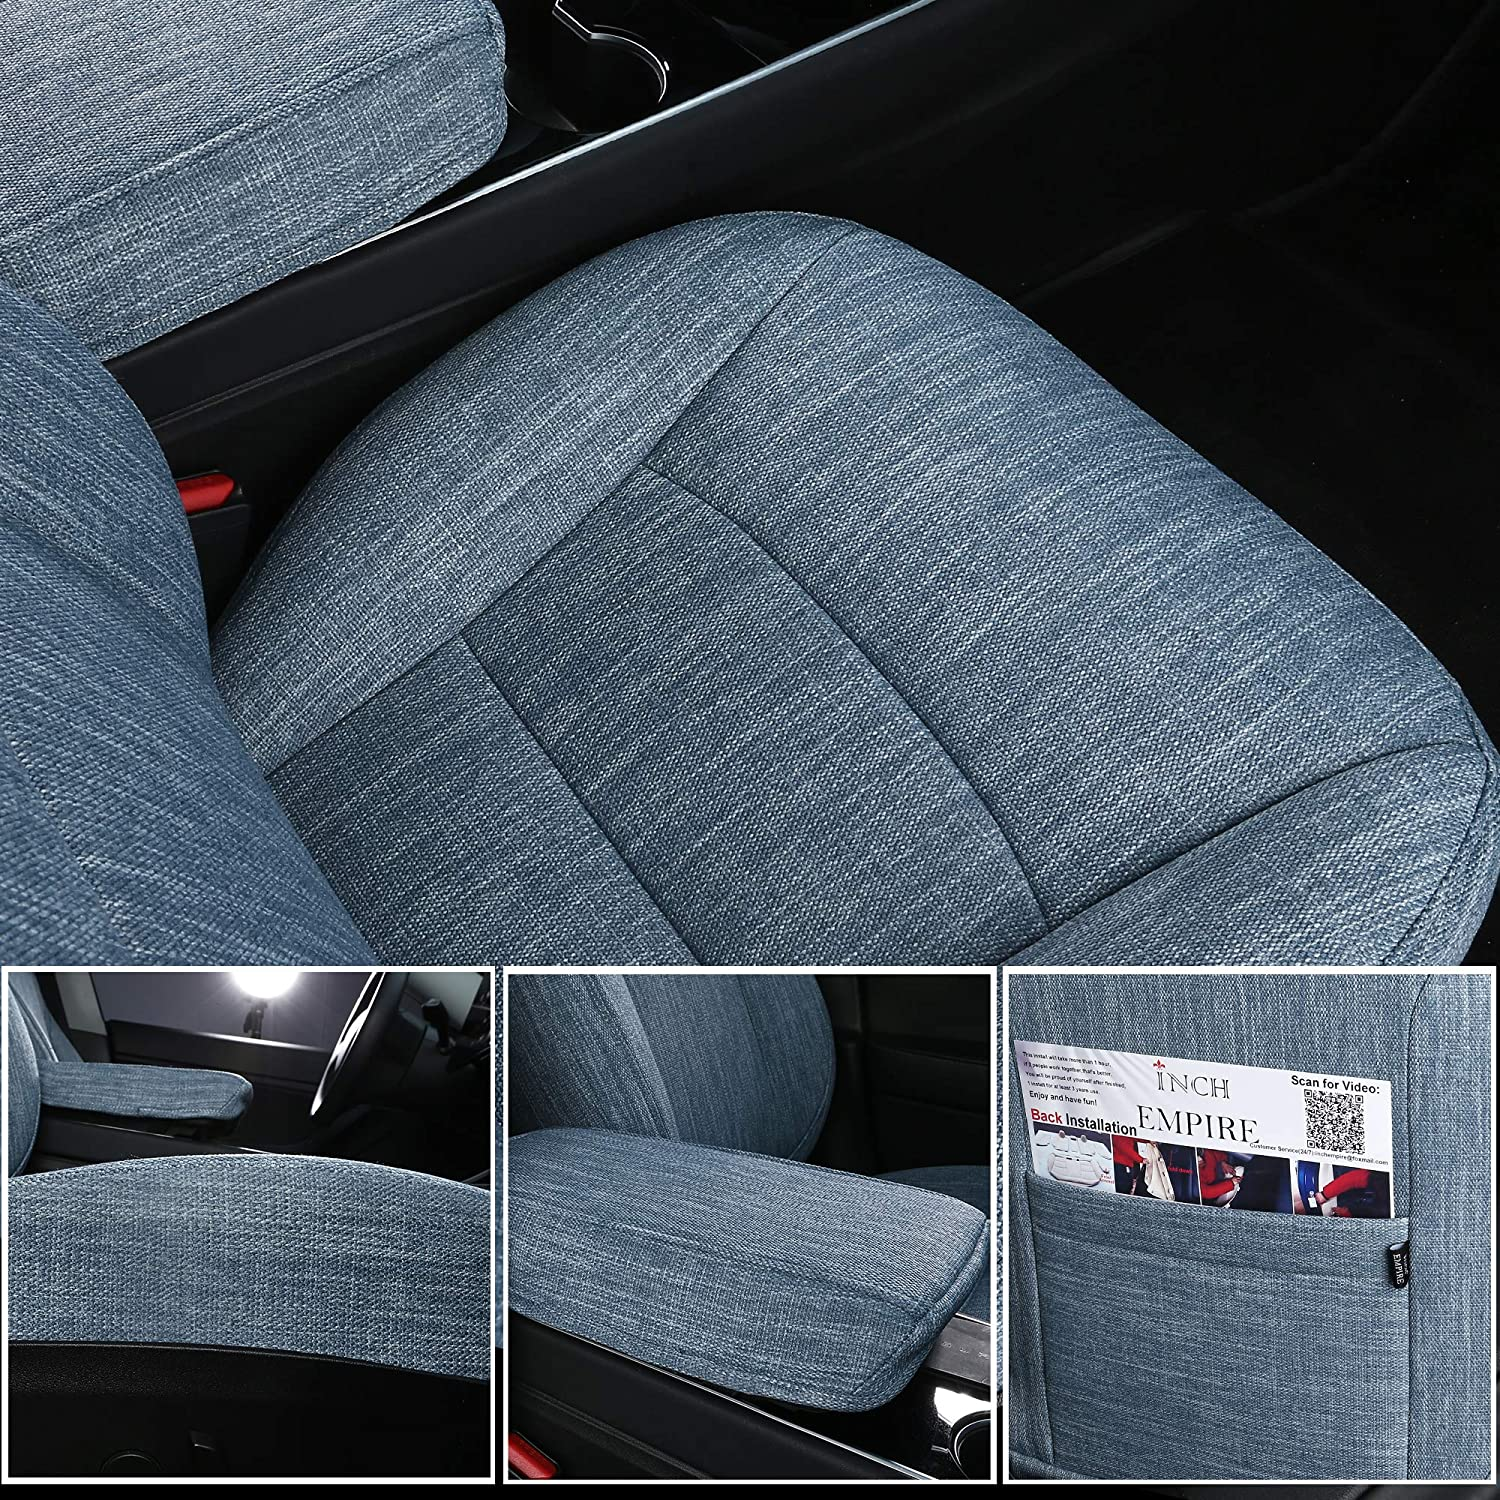 Beige INCH EMPIRE Car Seat Cover for Tesla Model 3 Fabric Cloth Breathable Sweat-Proof Seat Protector Custom Fit for Model 3 2017 2018 2019 2020